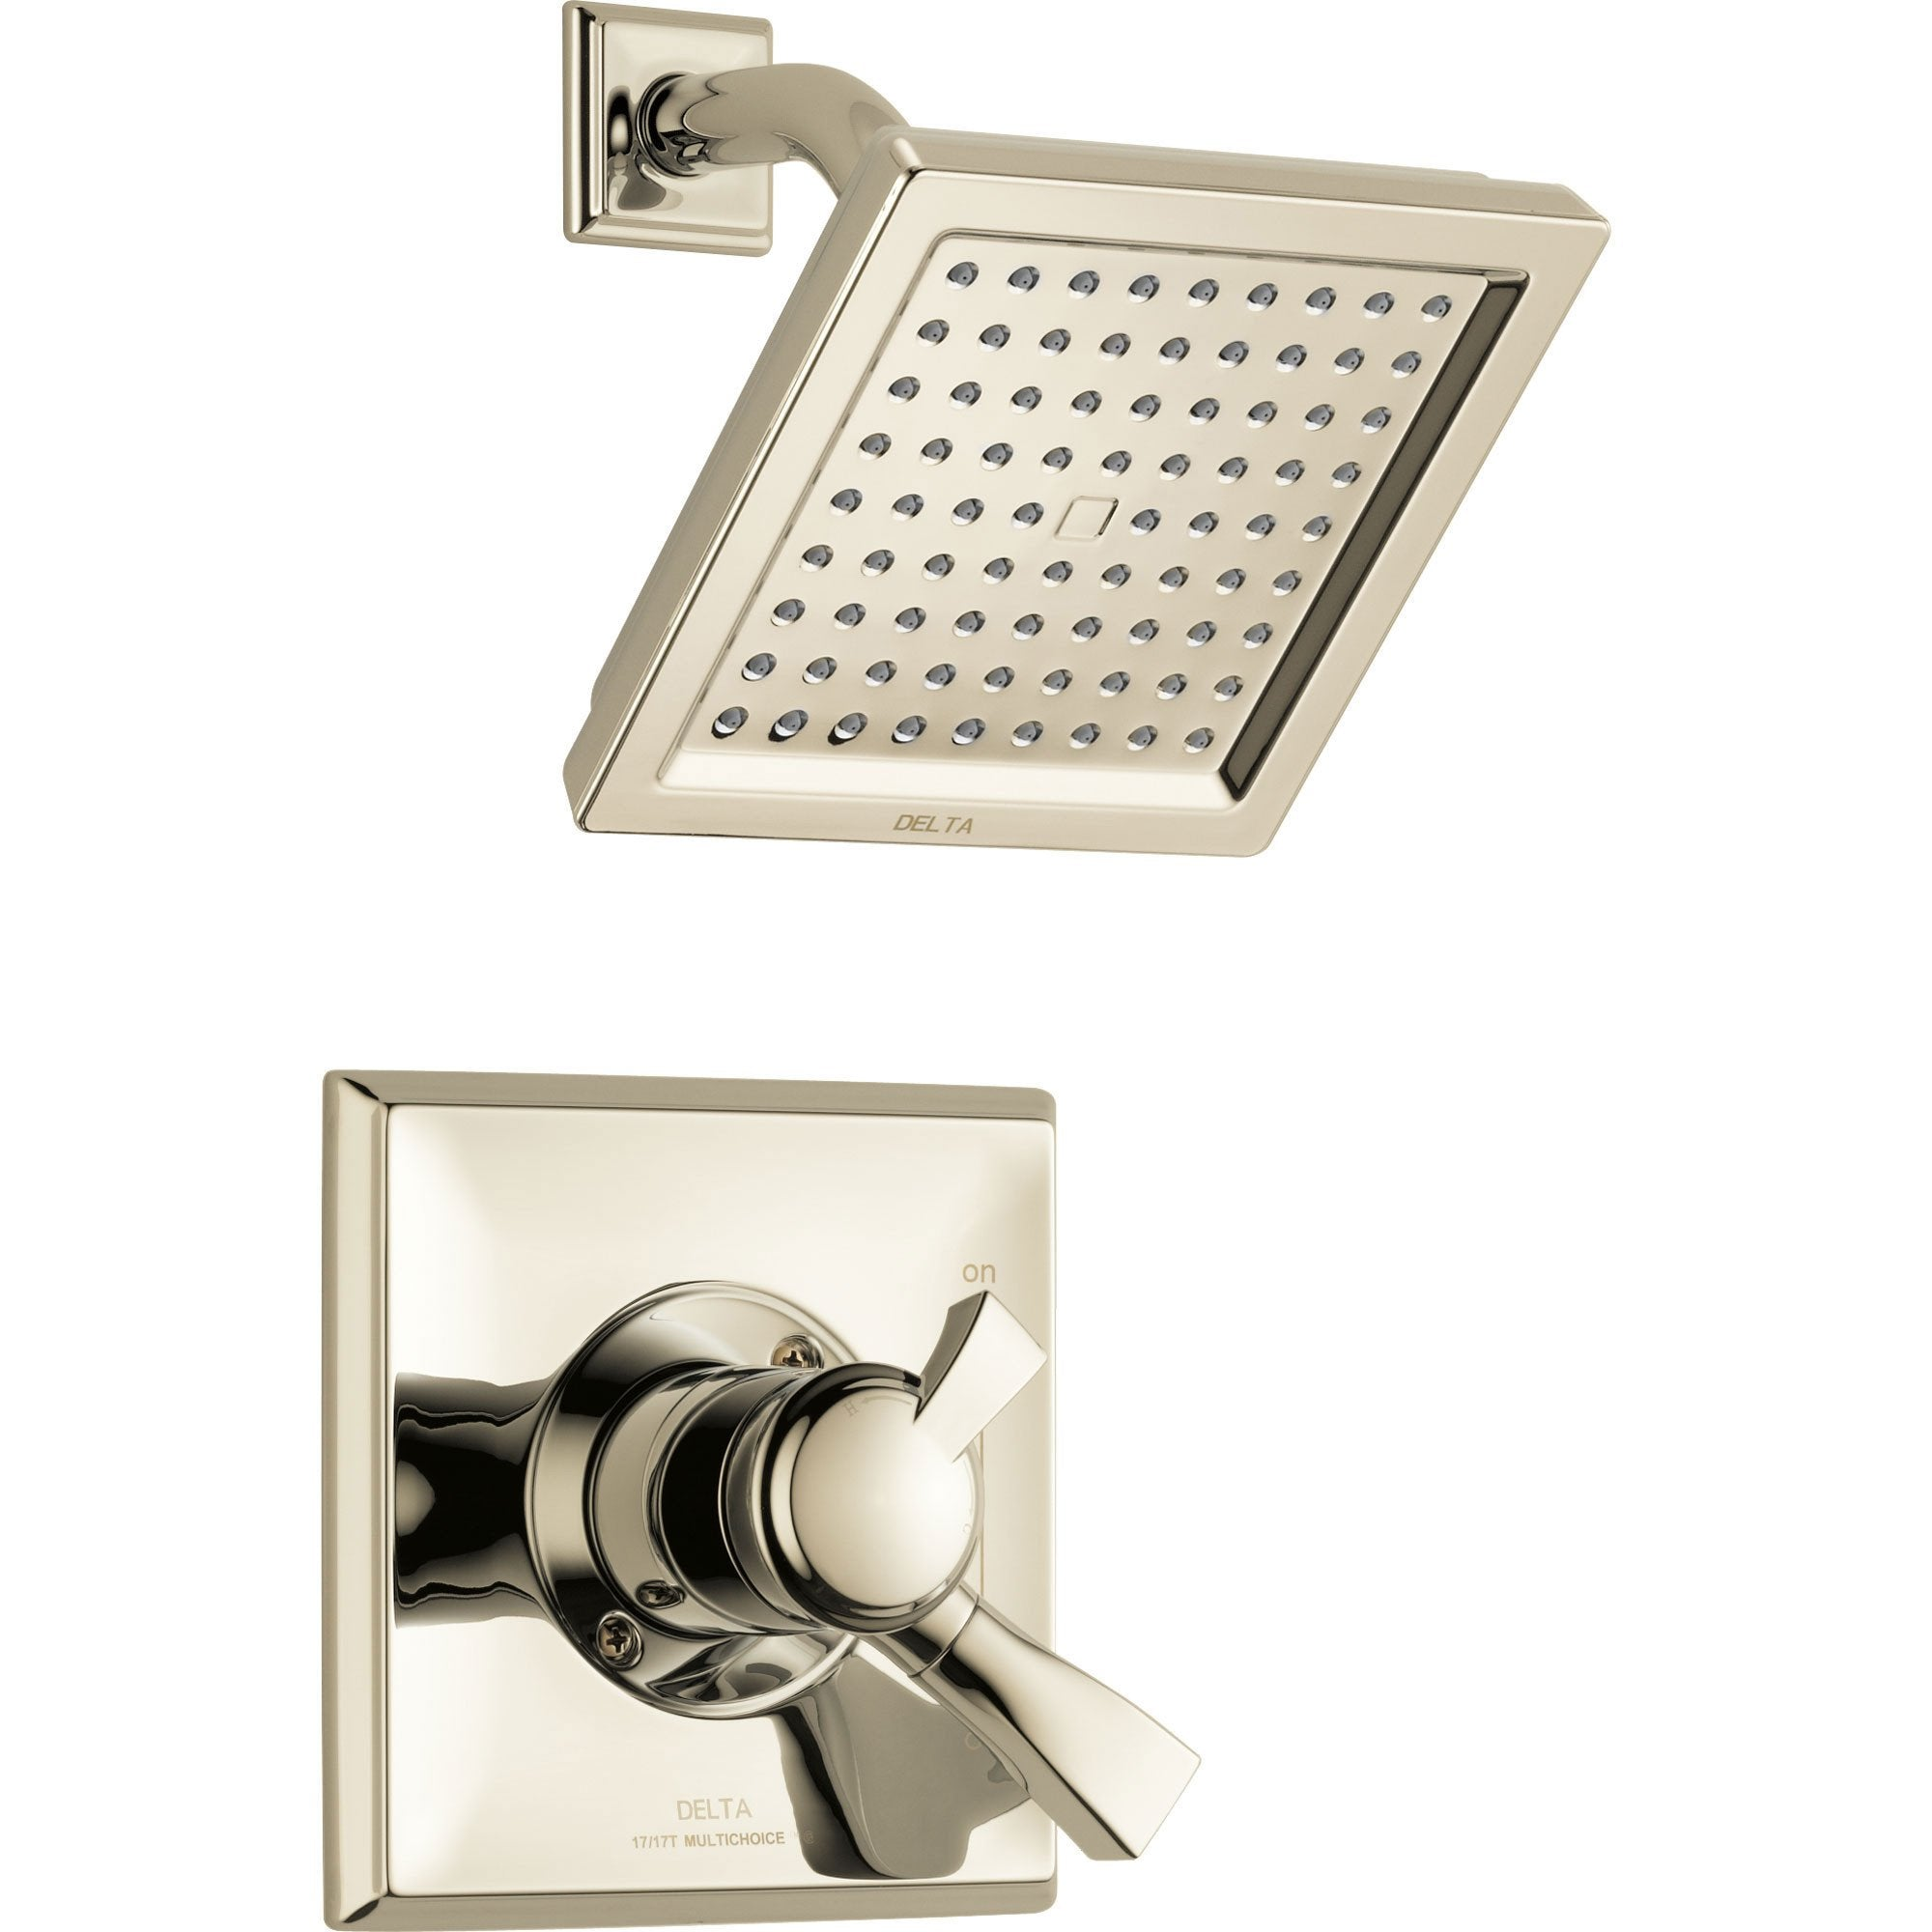 Delta Dryden Modern Square Polished Nickel Finish Shower Only Faucet with Dual Temperature and Pressure Control INCLUDES Rough-in Valve with Stops D1147V